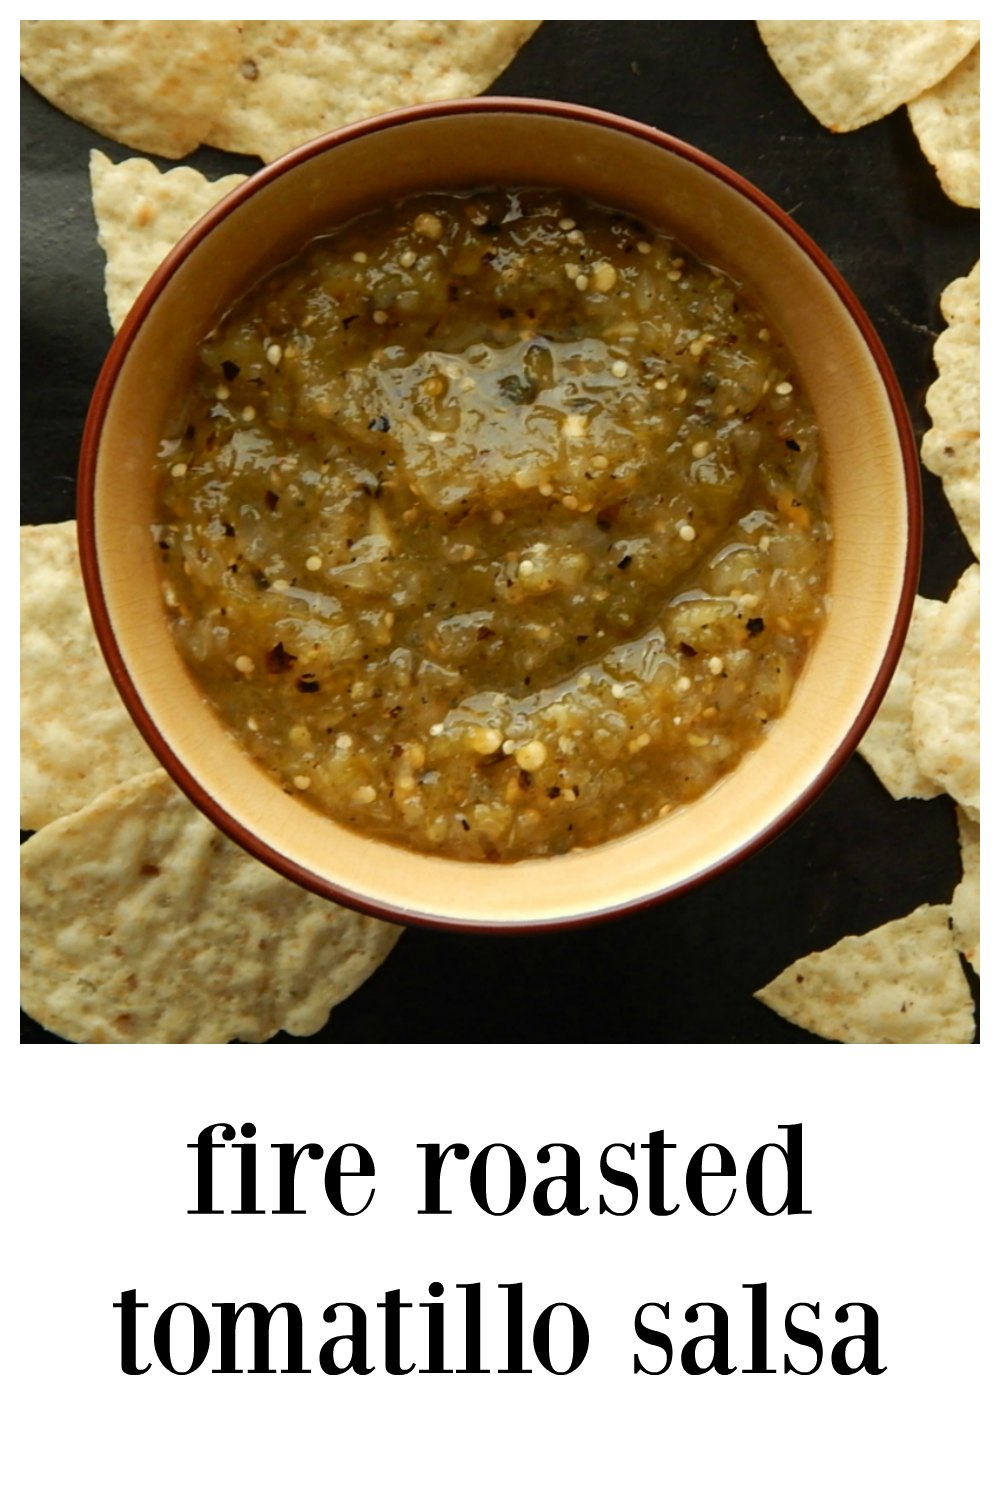 Fire Roasted Tomatillo Salsa knock your socks off good, tons of flavor and as much or as little heat as you want! This recipe has some secrets! Customize it. #FireRoastedTomatilloSalsa #TomatilloSalsa #Salsa #Salsas #Tomatillos #Mexican